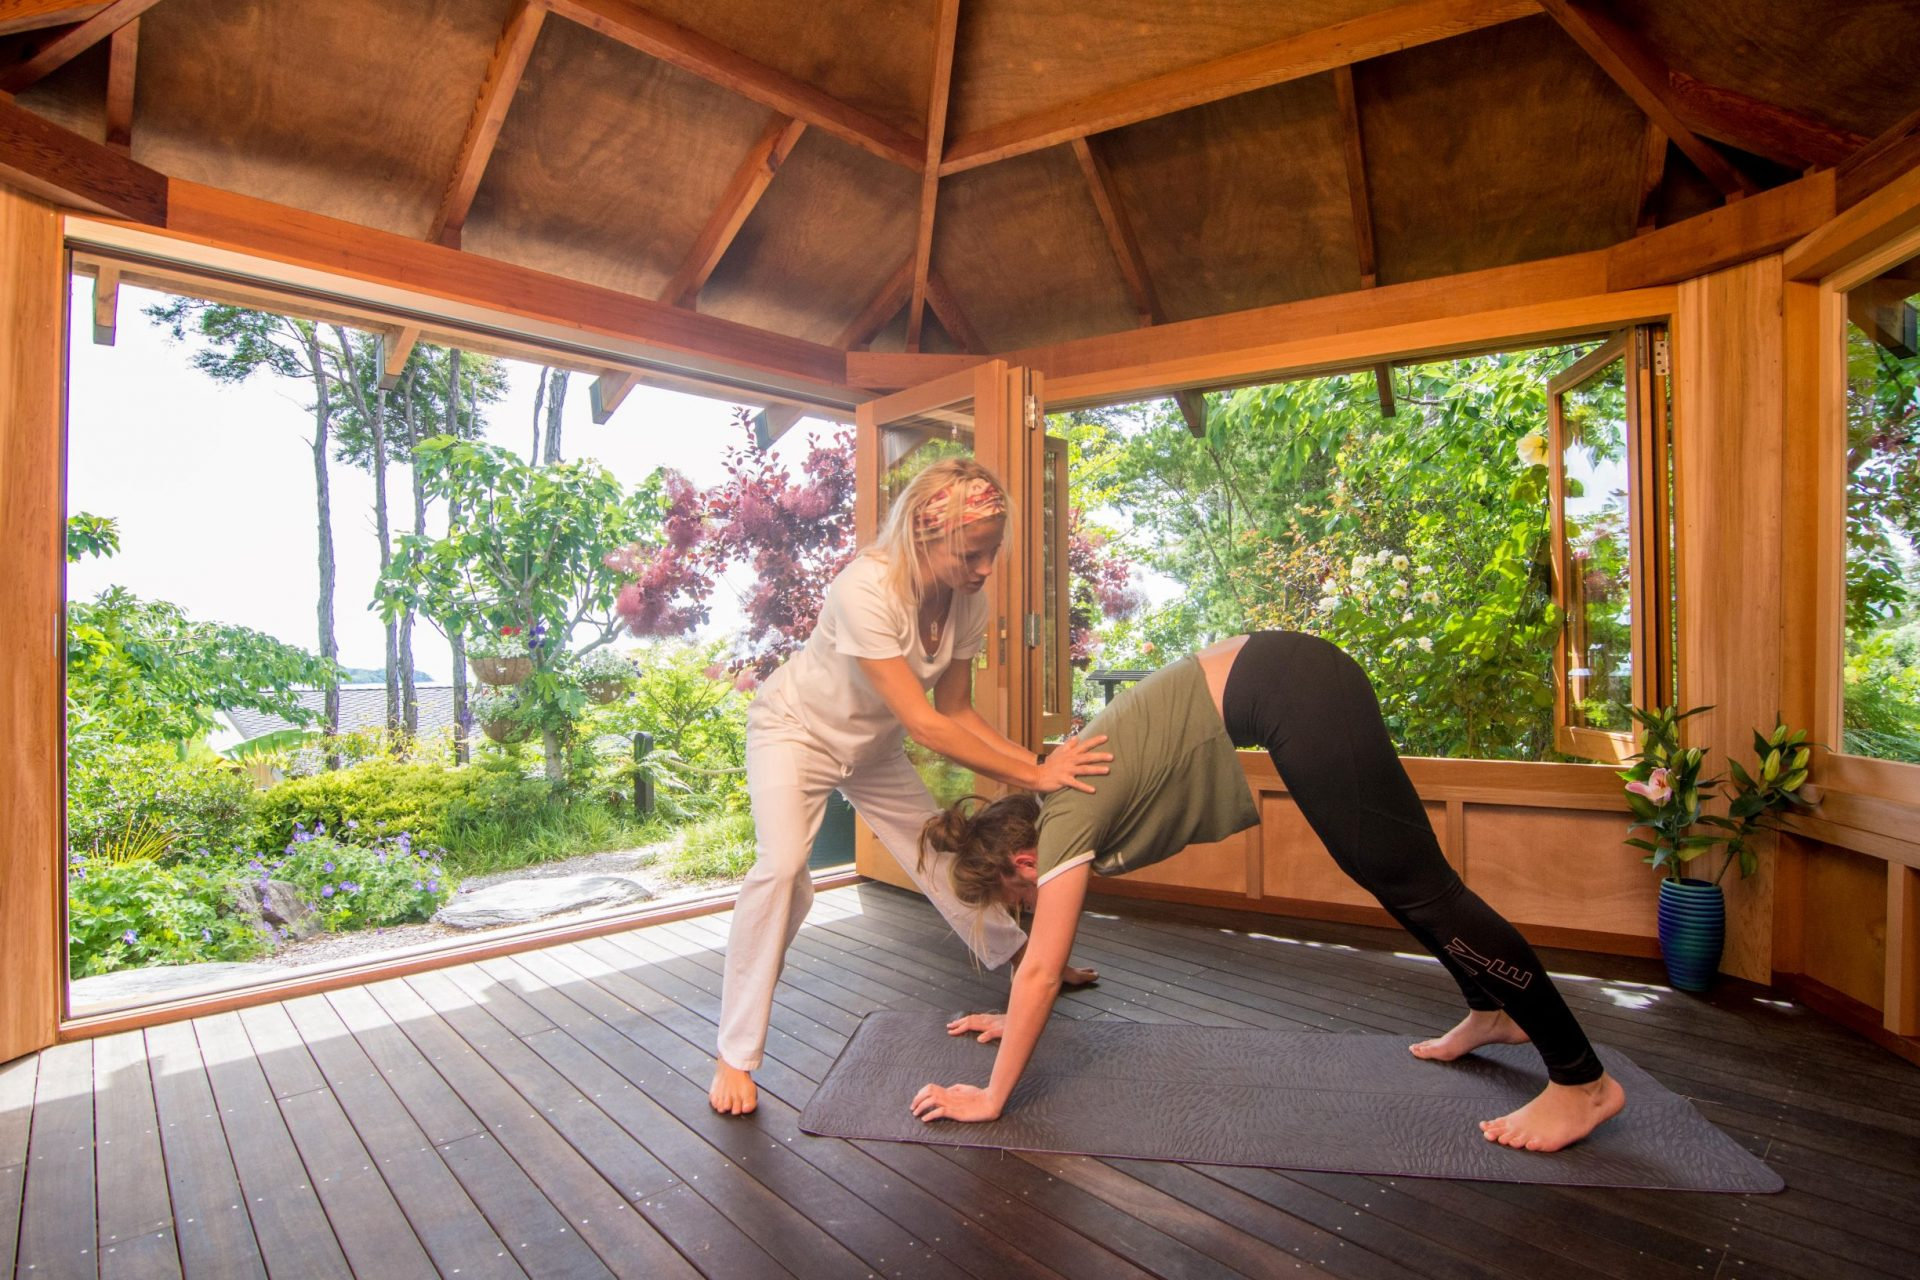 Split Apple Yoga Retreat